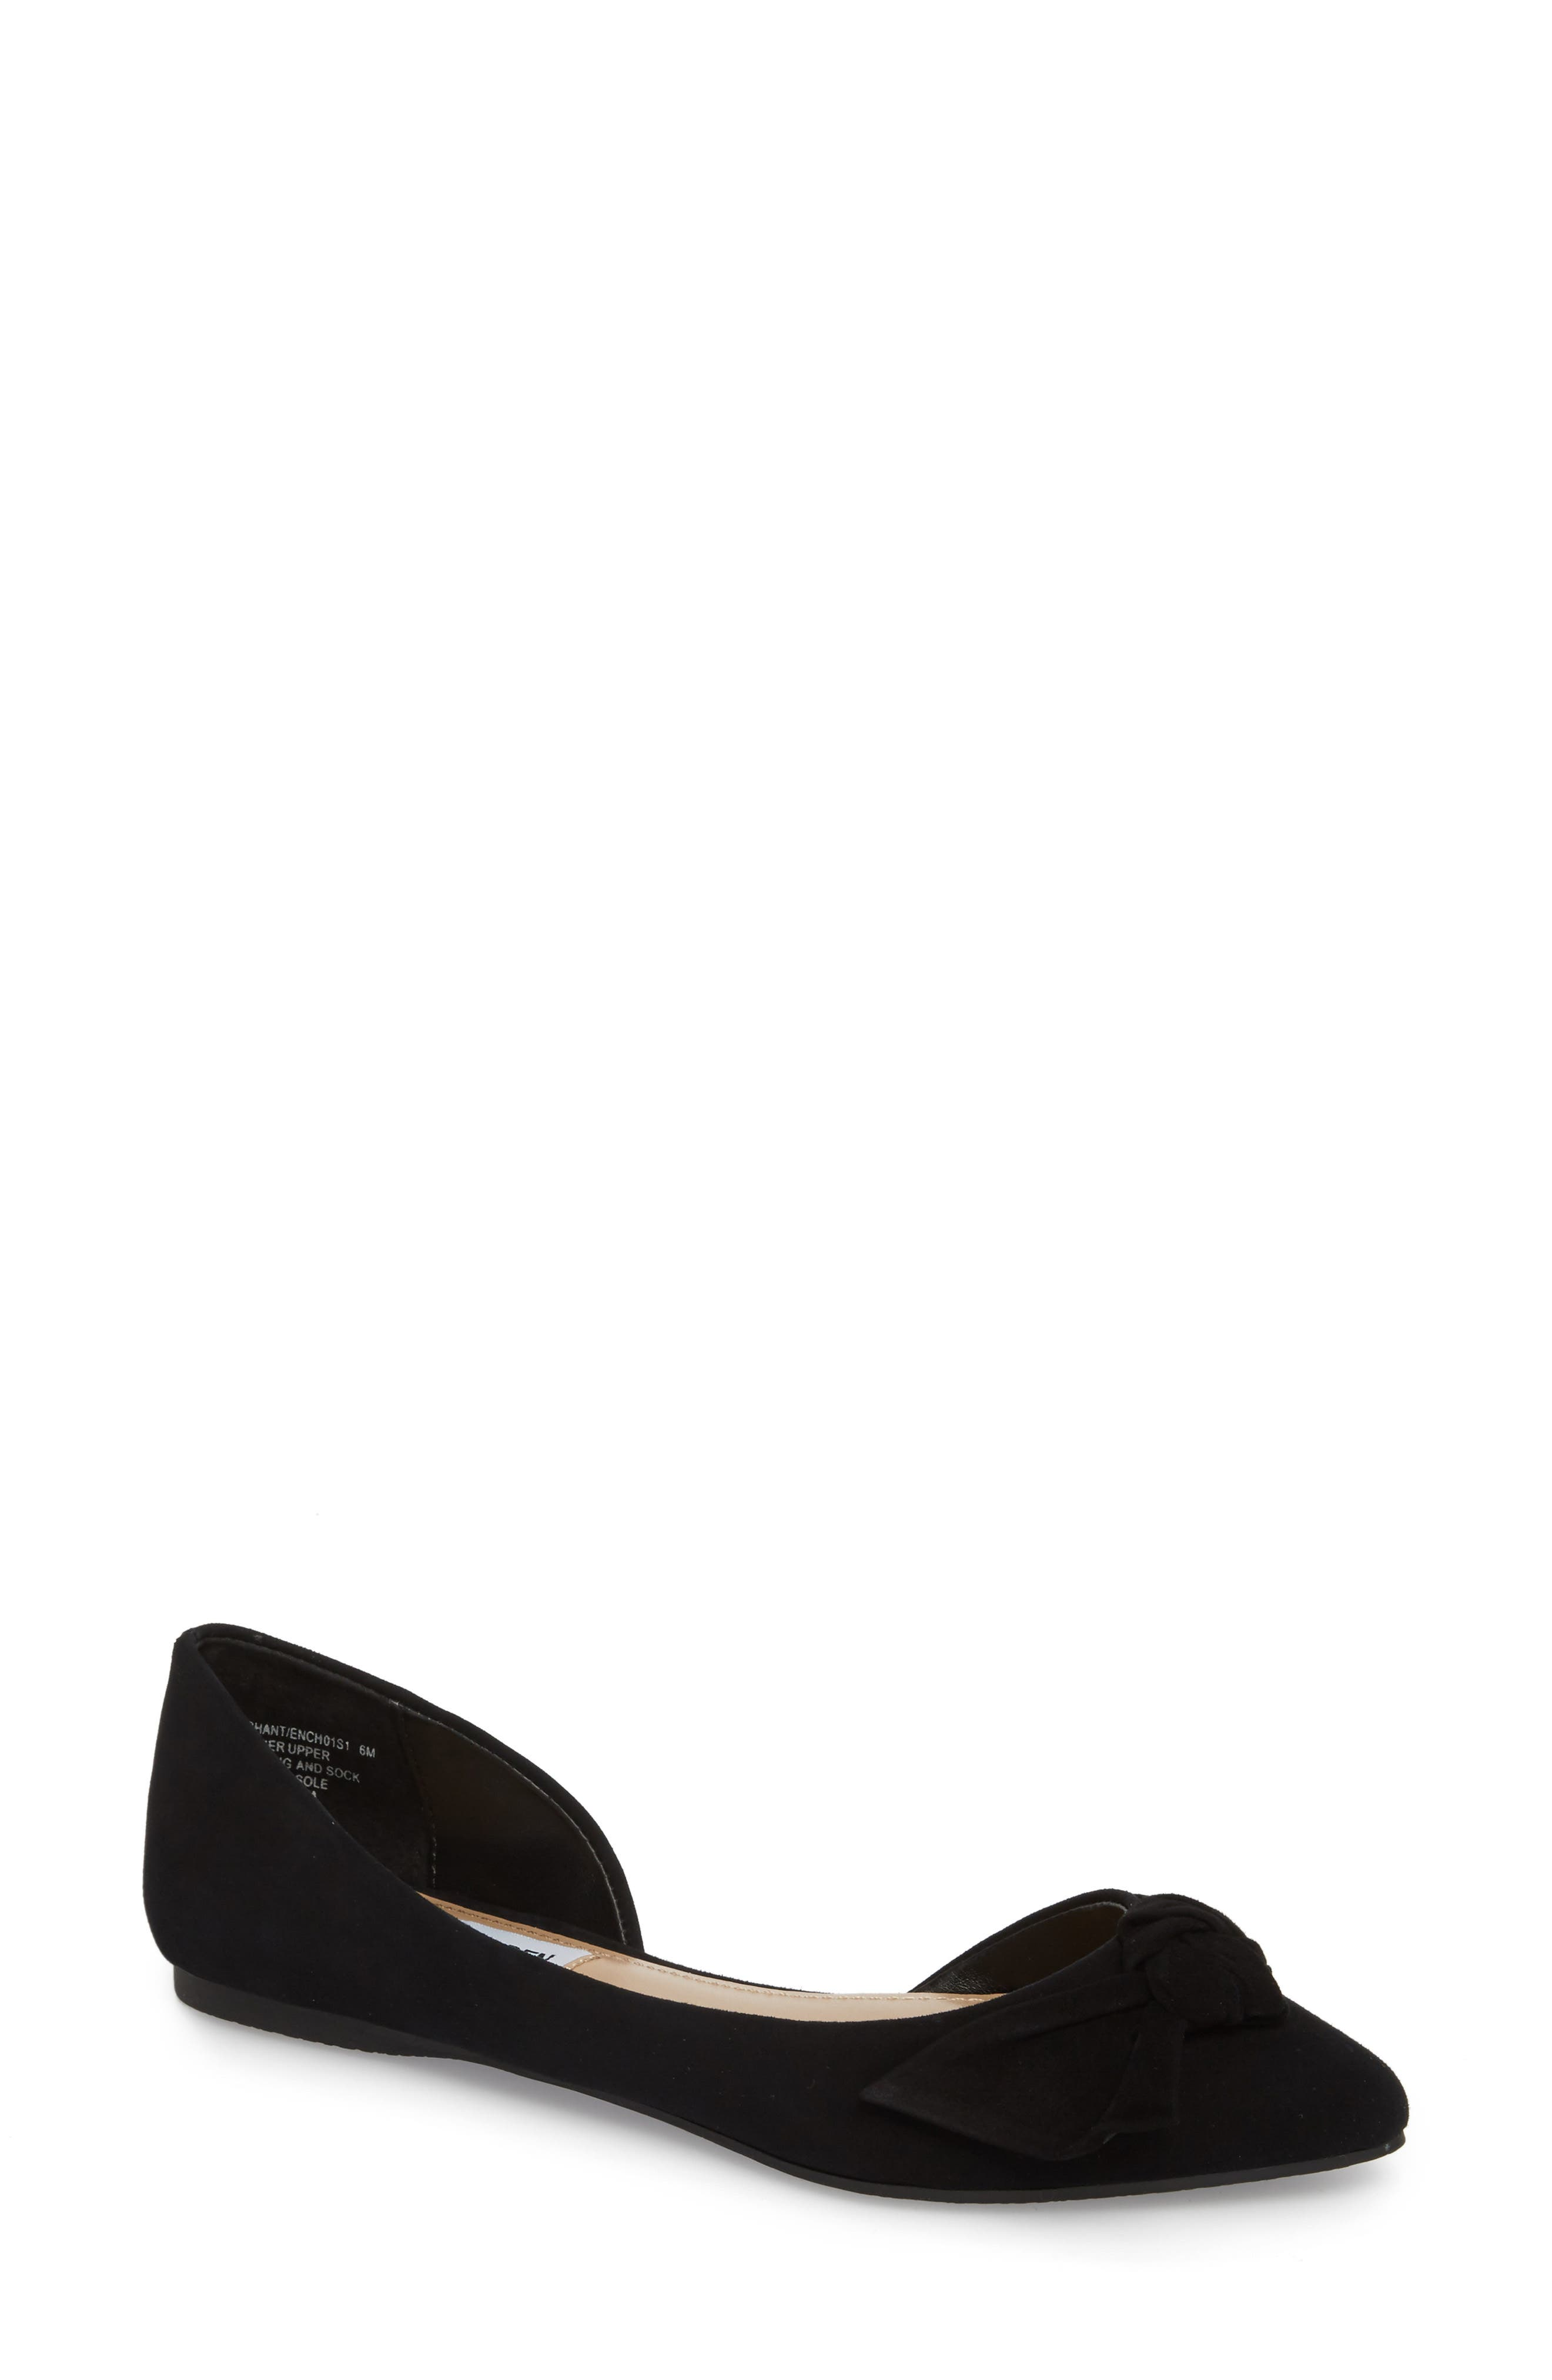 STEVE MADDEN Enchant Flat, Main, color, 006